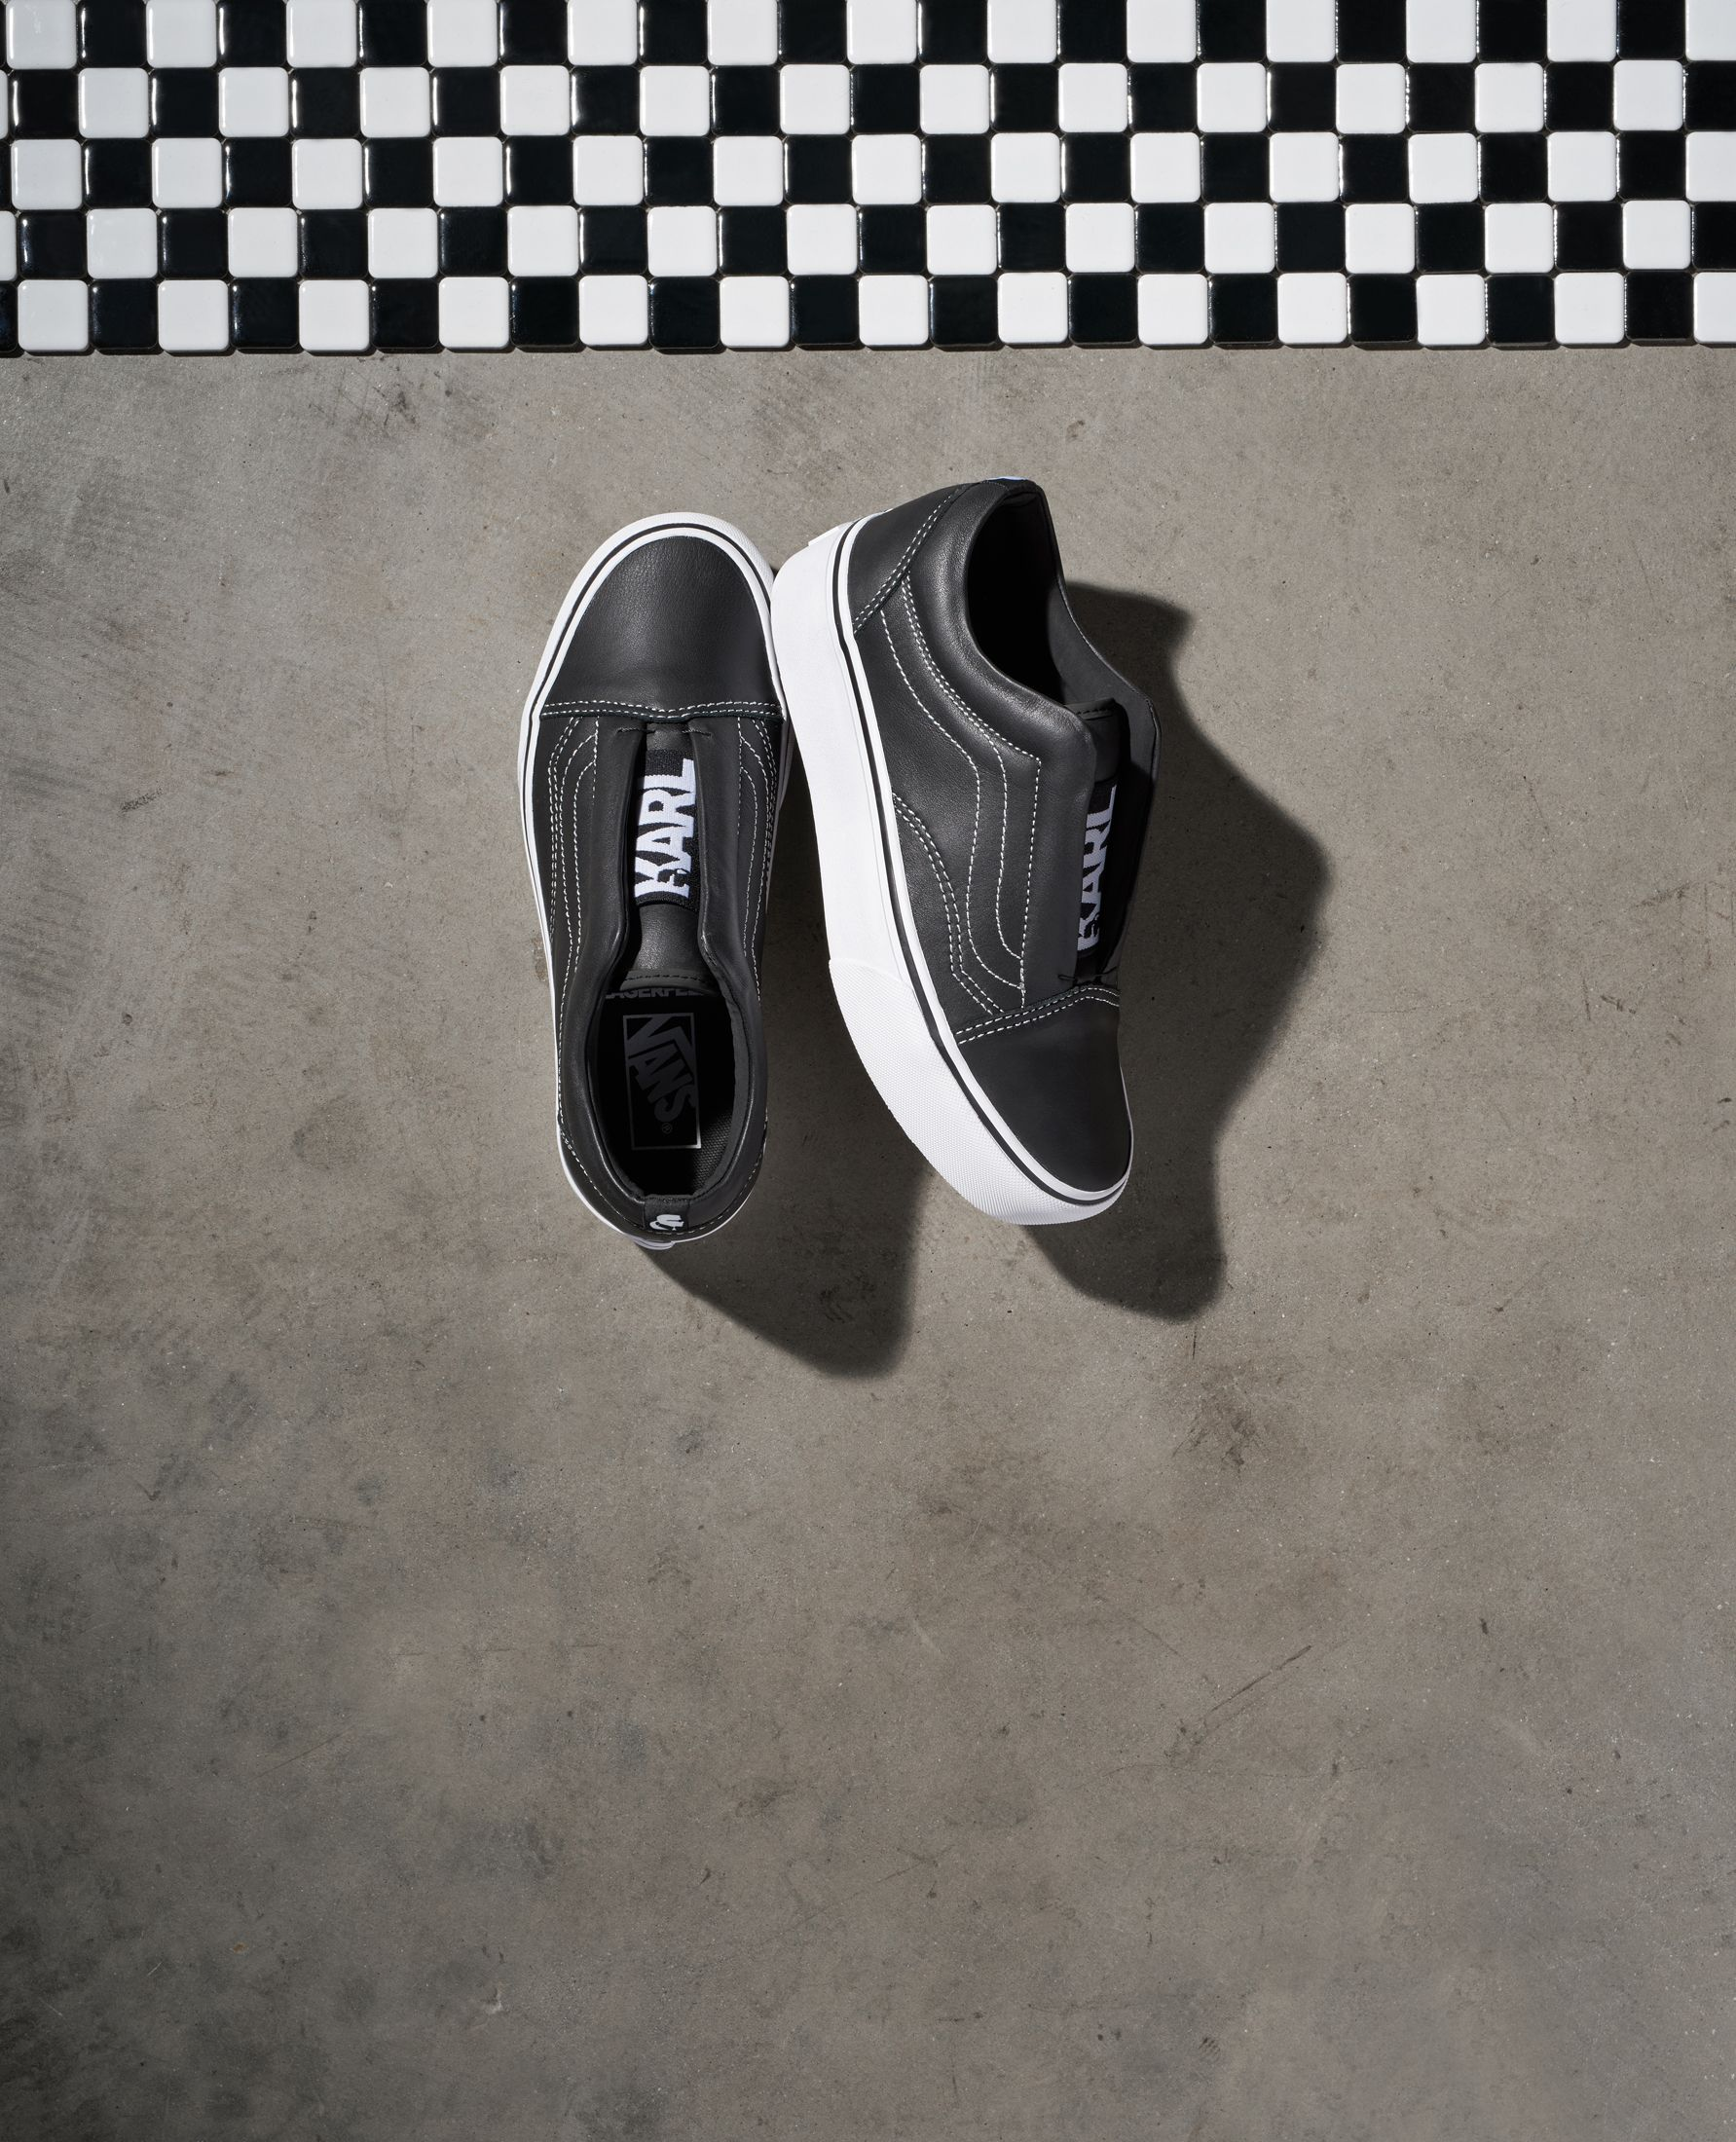 4710352bd0a8 First Look at Vans x Karl Lagerfeld Collab - Vans x Karl Lagerfeld ...